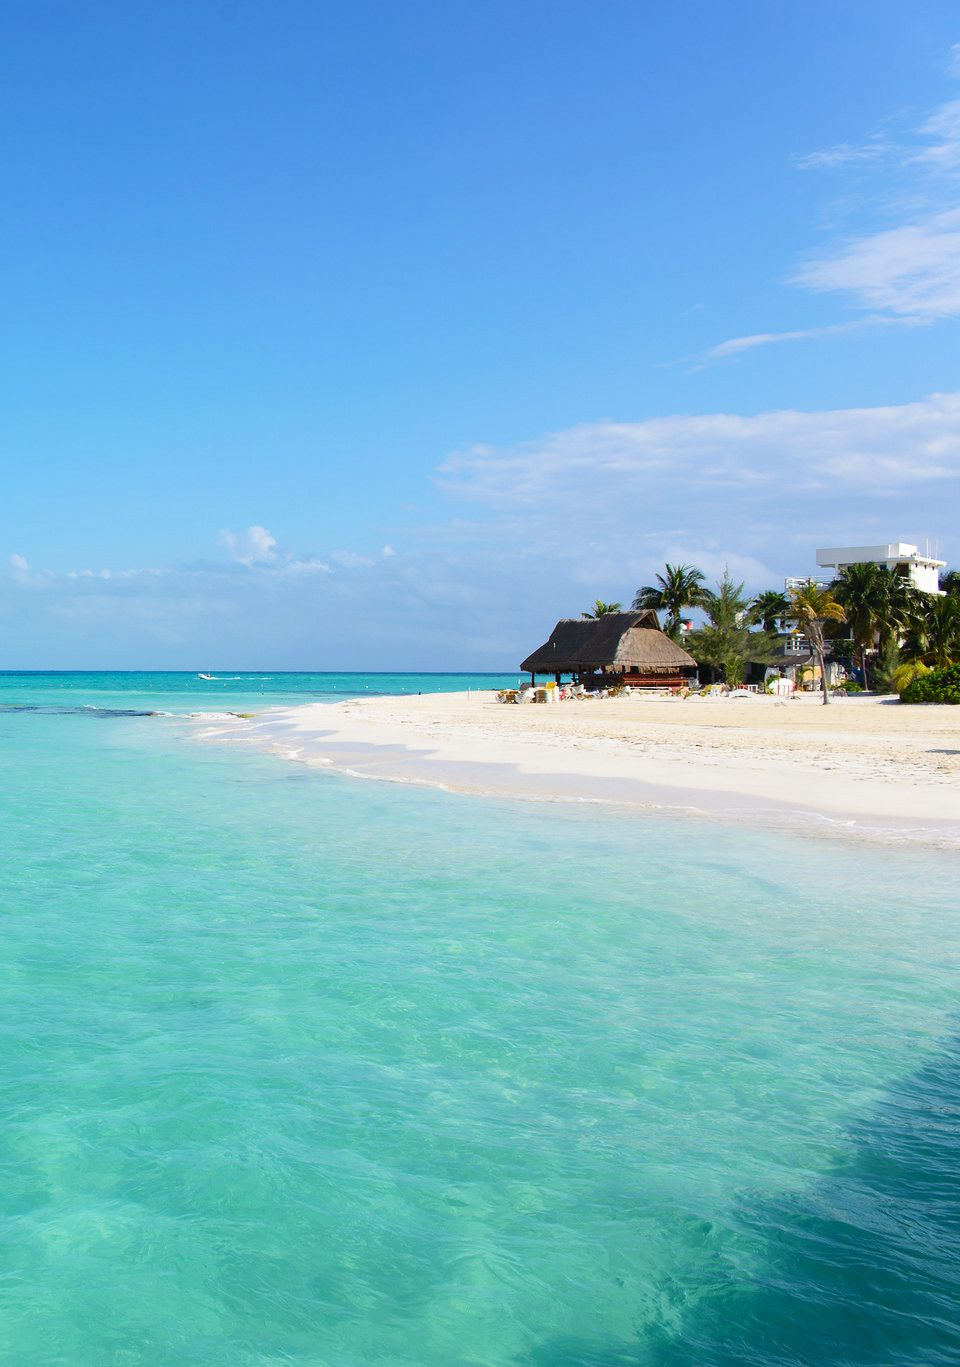 Isla Mujeres All Inclusive Resorts & Hotels for Vacations $64 |Islas Mujeres Vacations